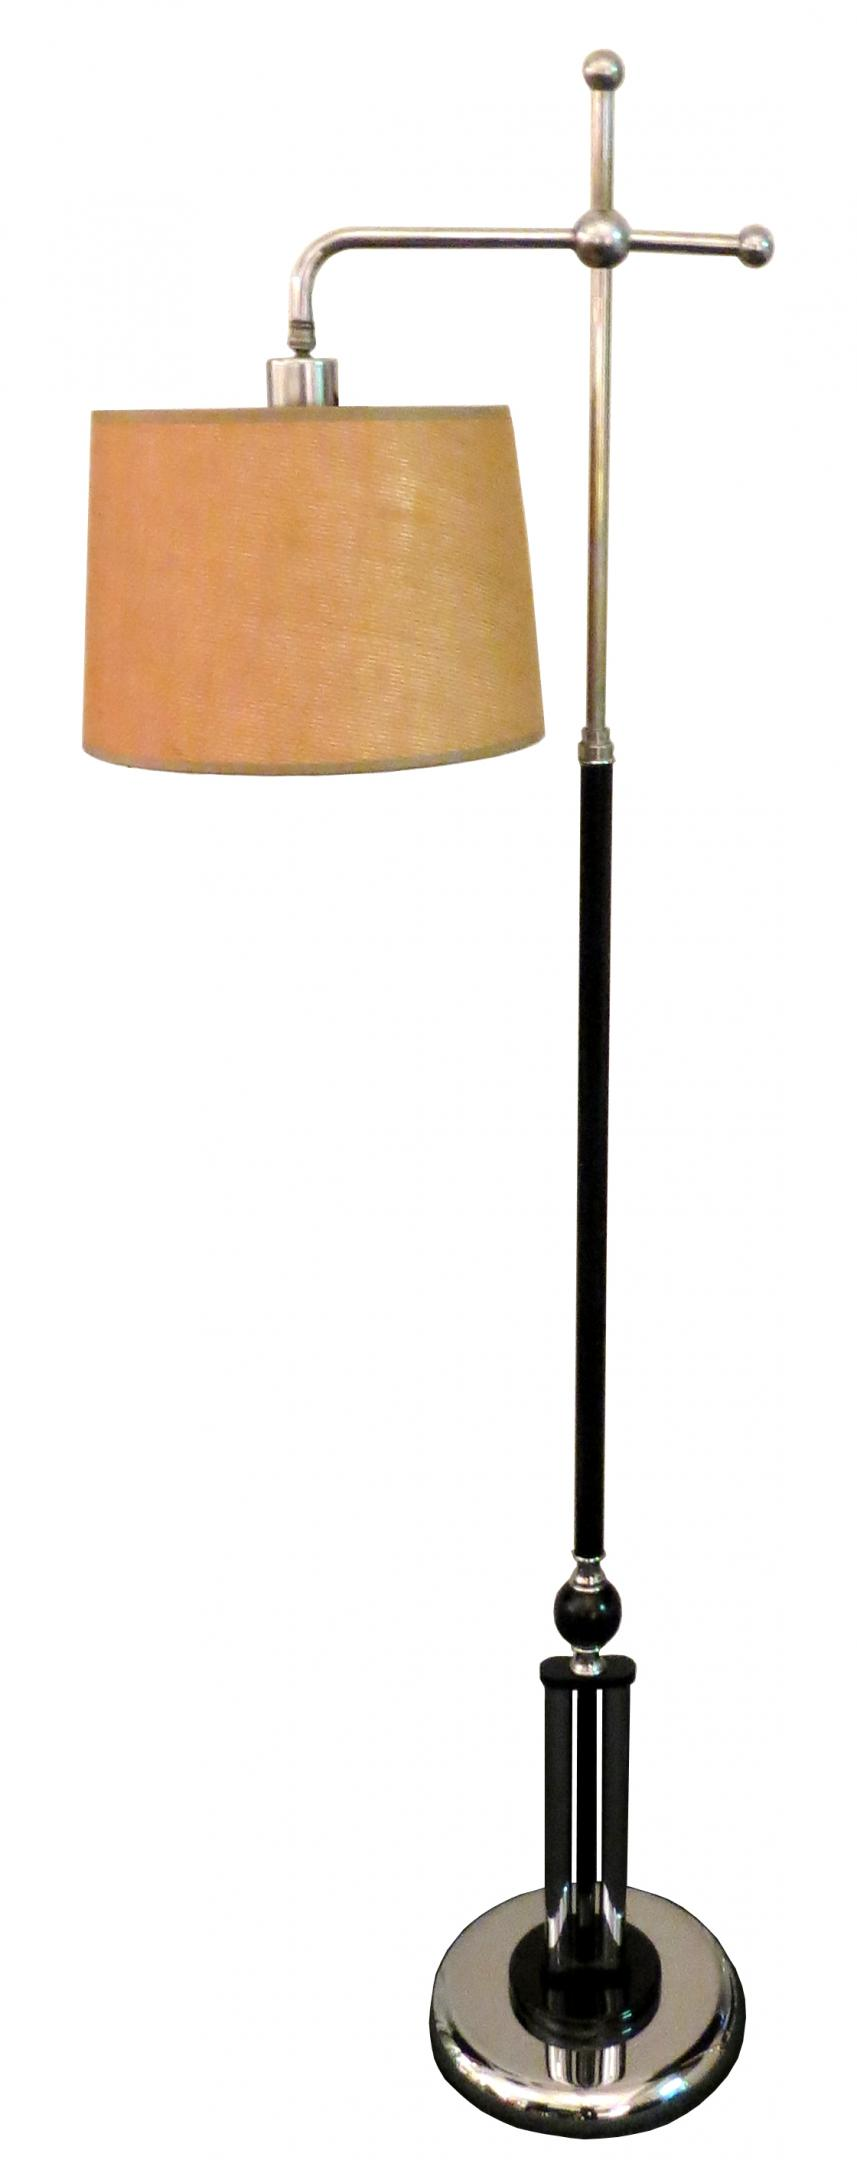 American Art Deco Floor Lamp Modernism